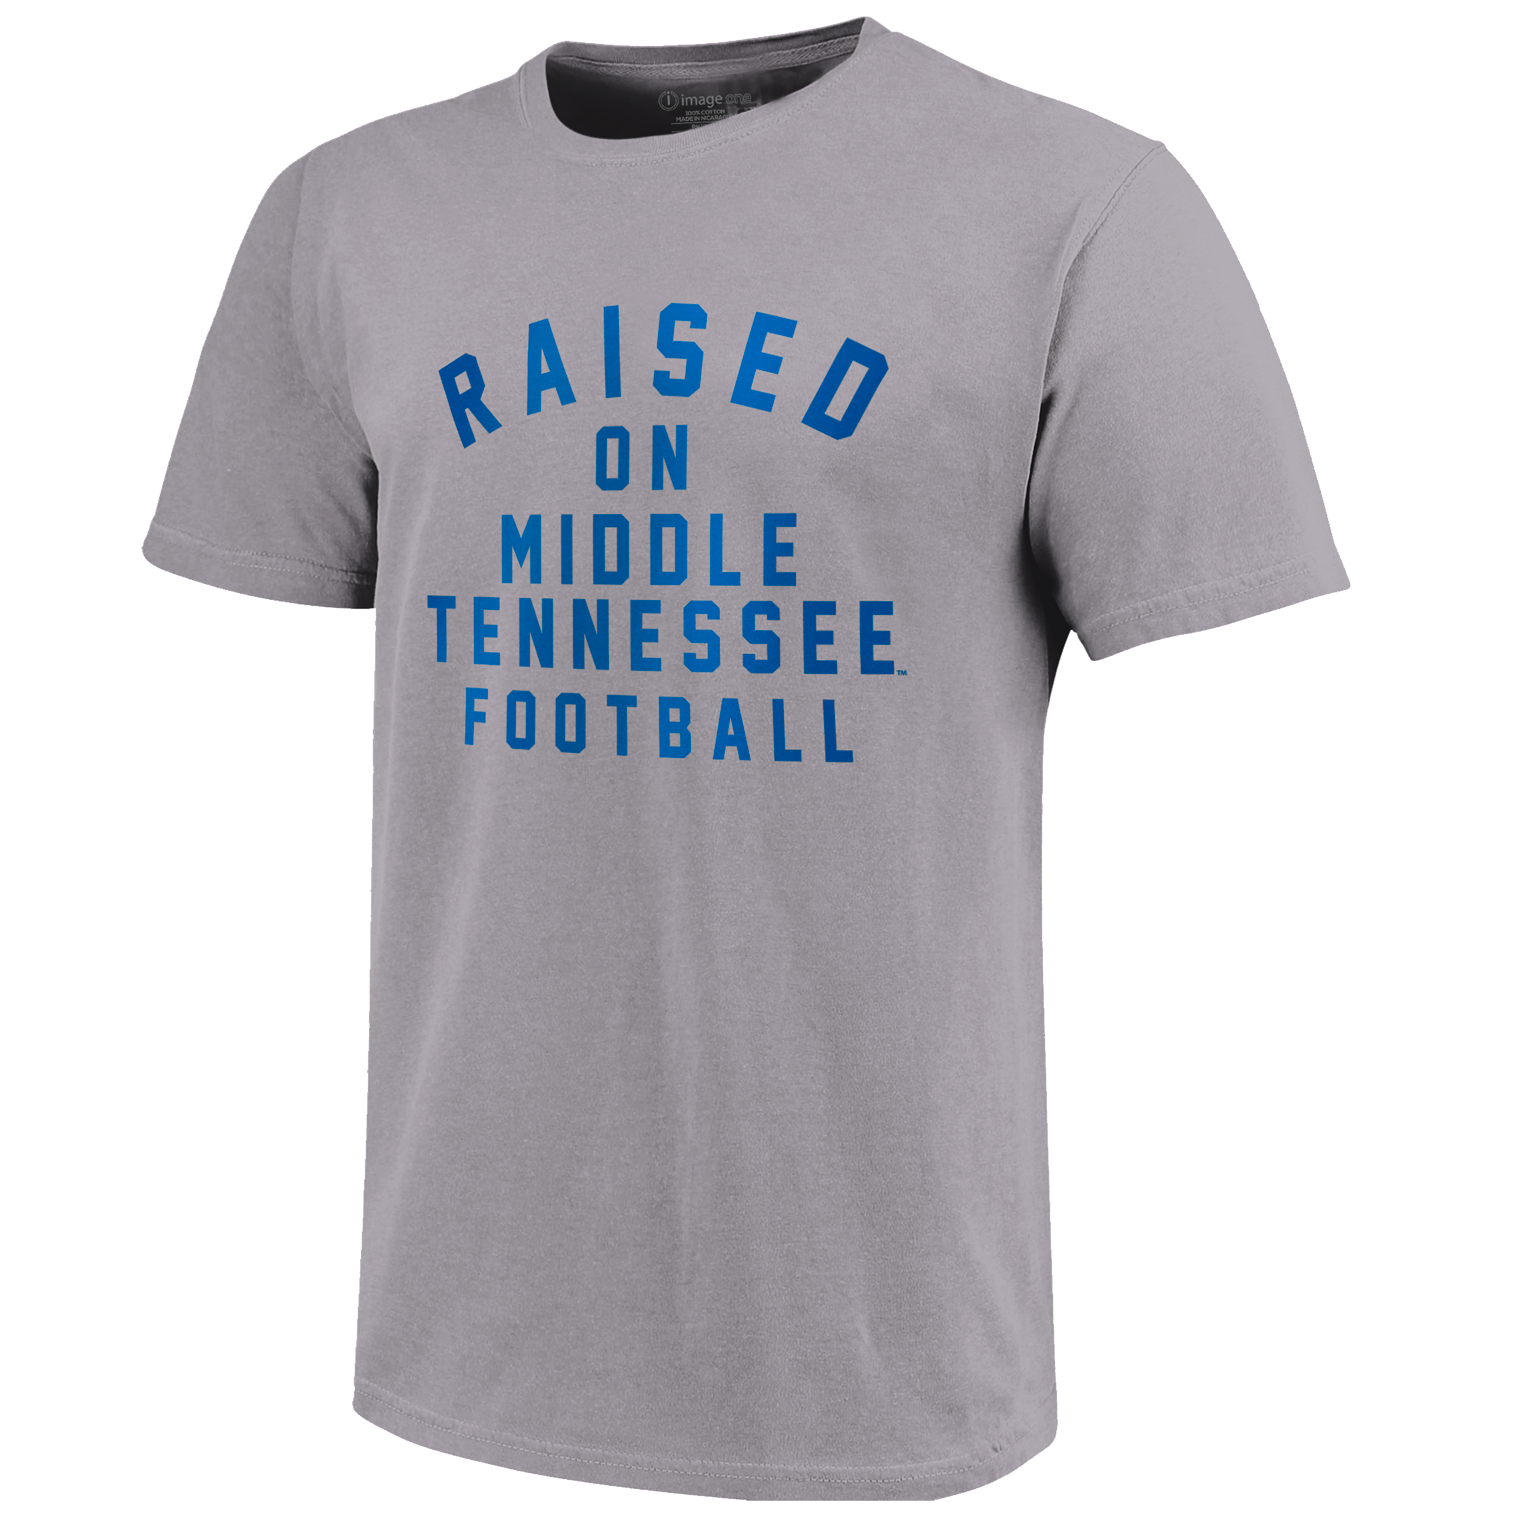 Raised on MT Football Tshirt